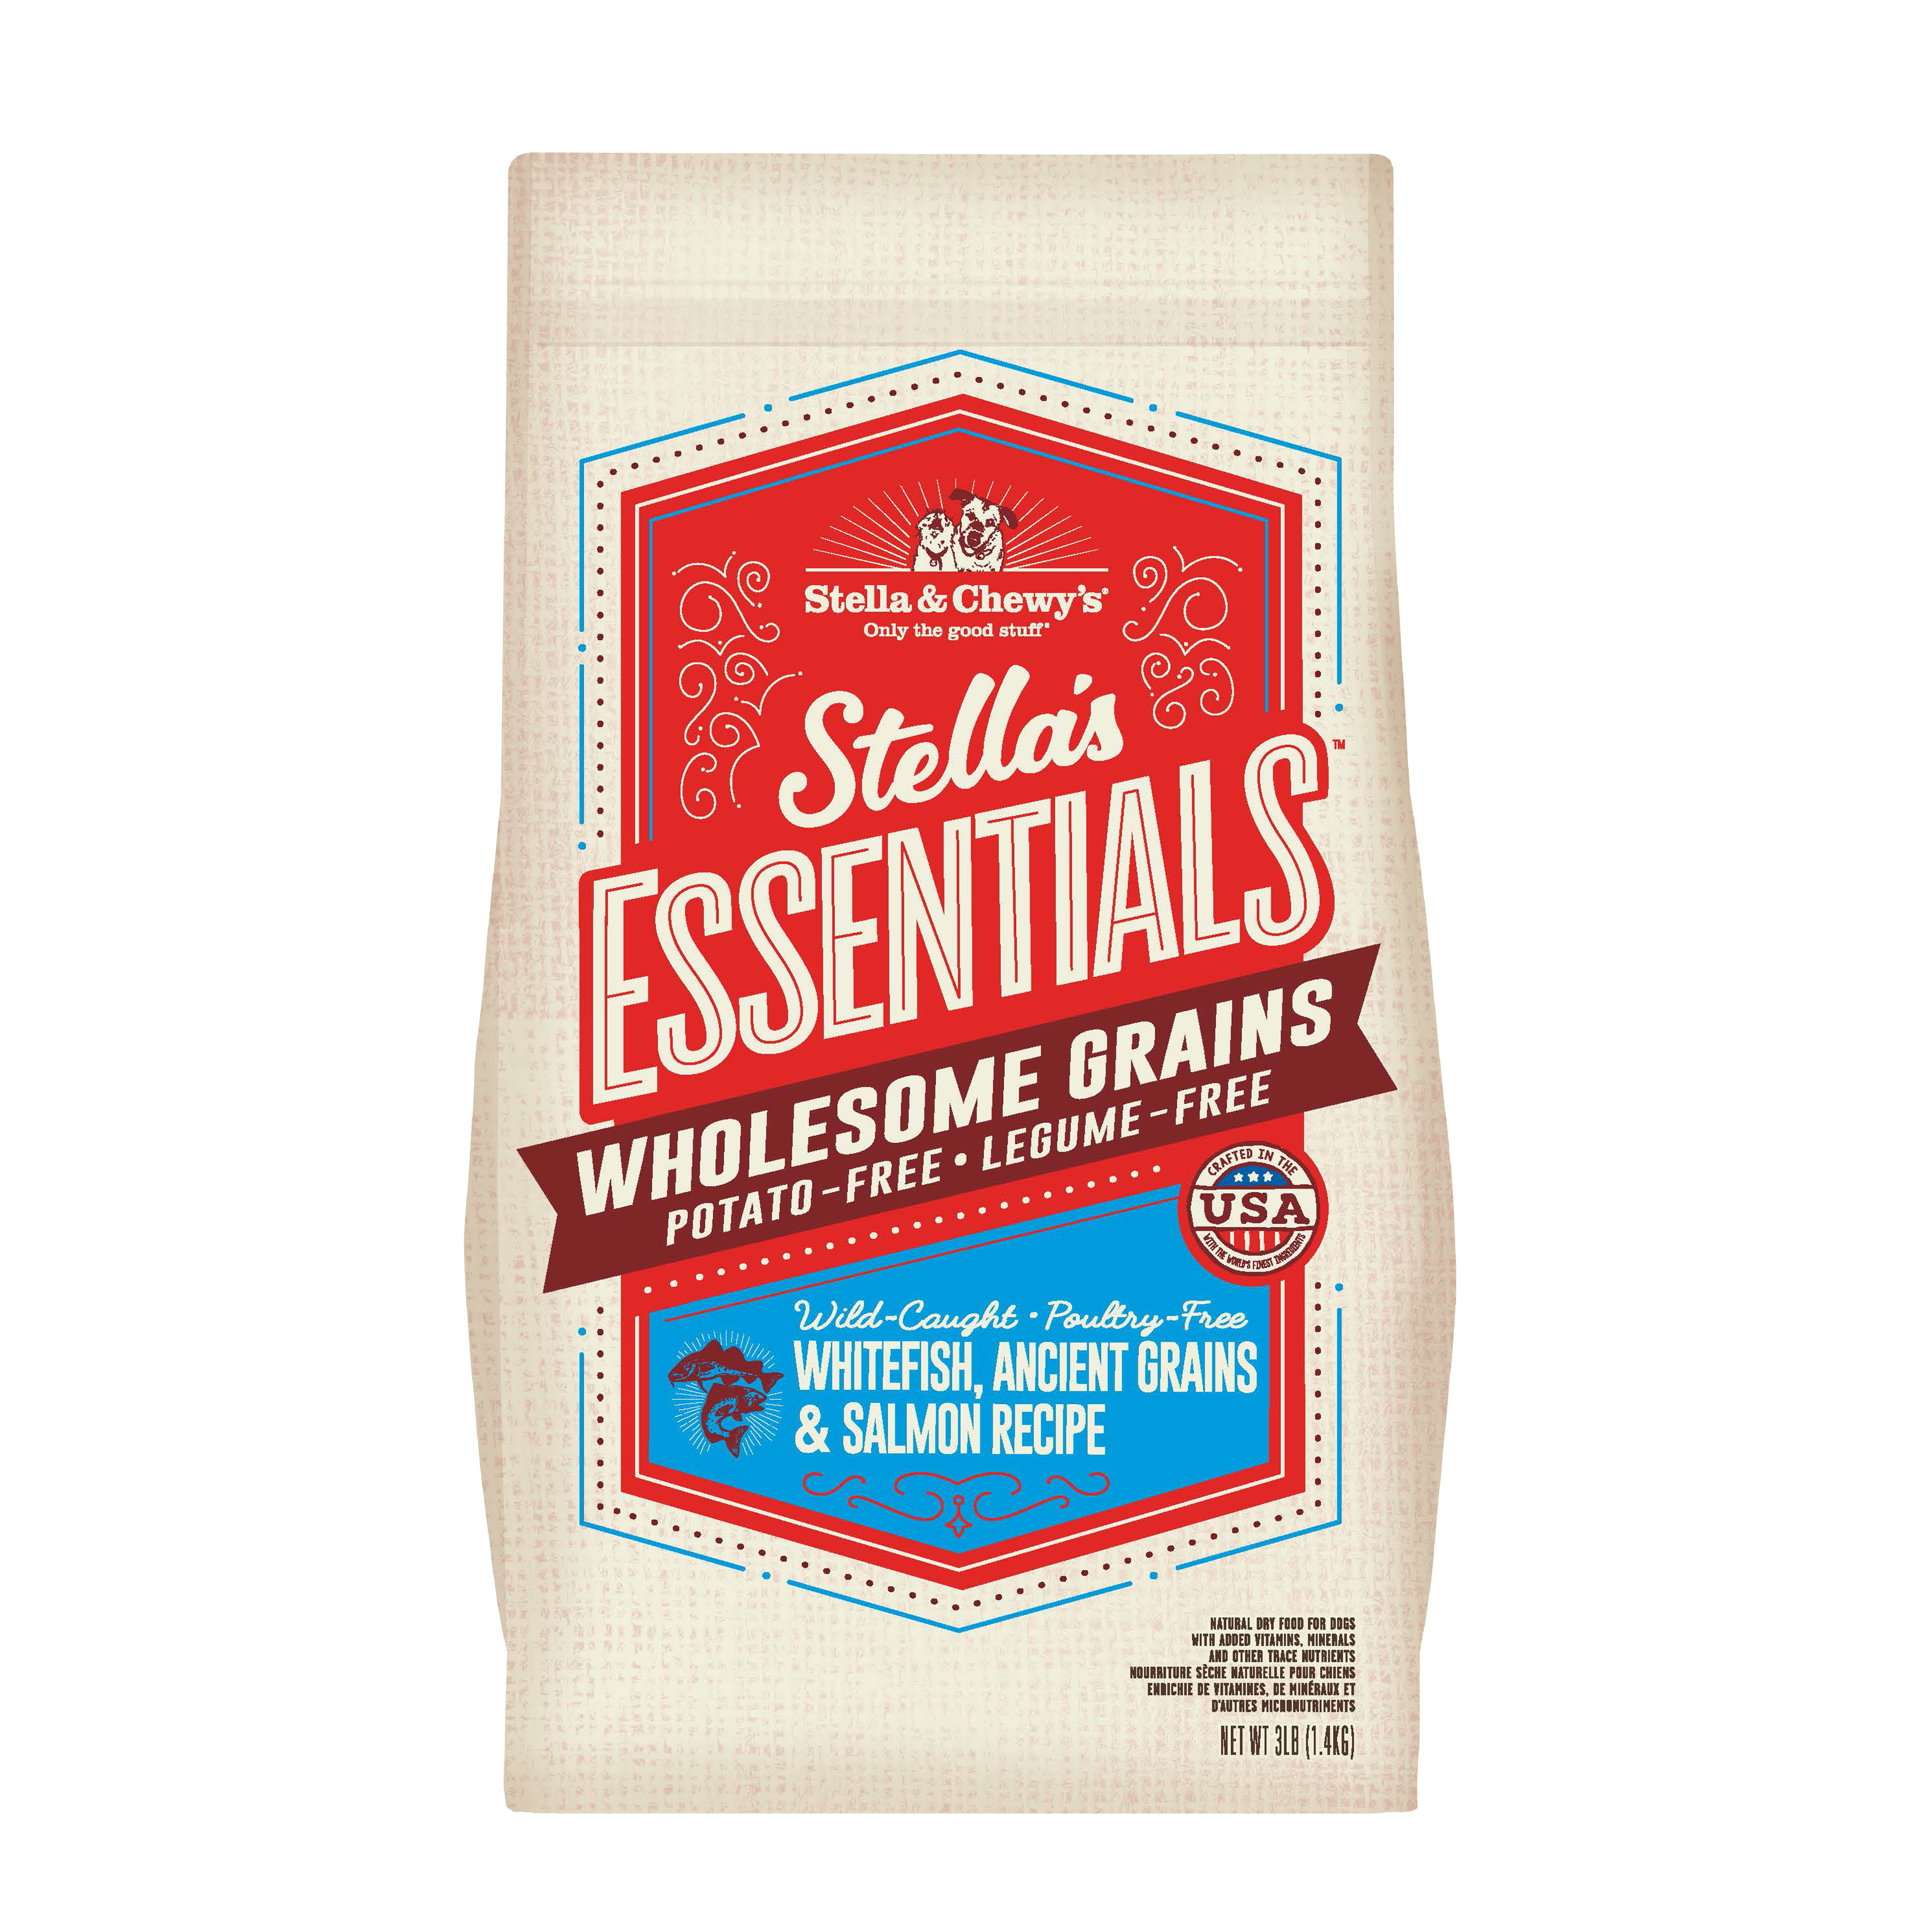 Stella & Chewy's Essentials Wholesome Grains Whitefish, Salmon & Ancient Grains Dry Dog Food, 3-lb